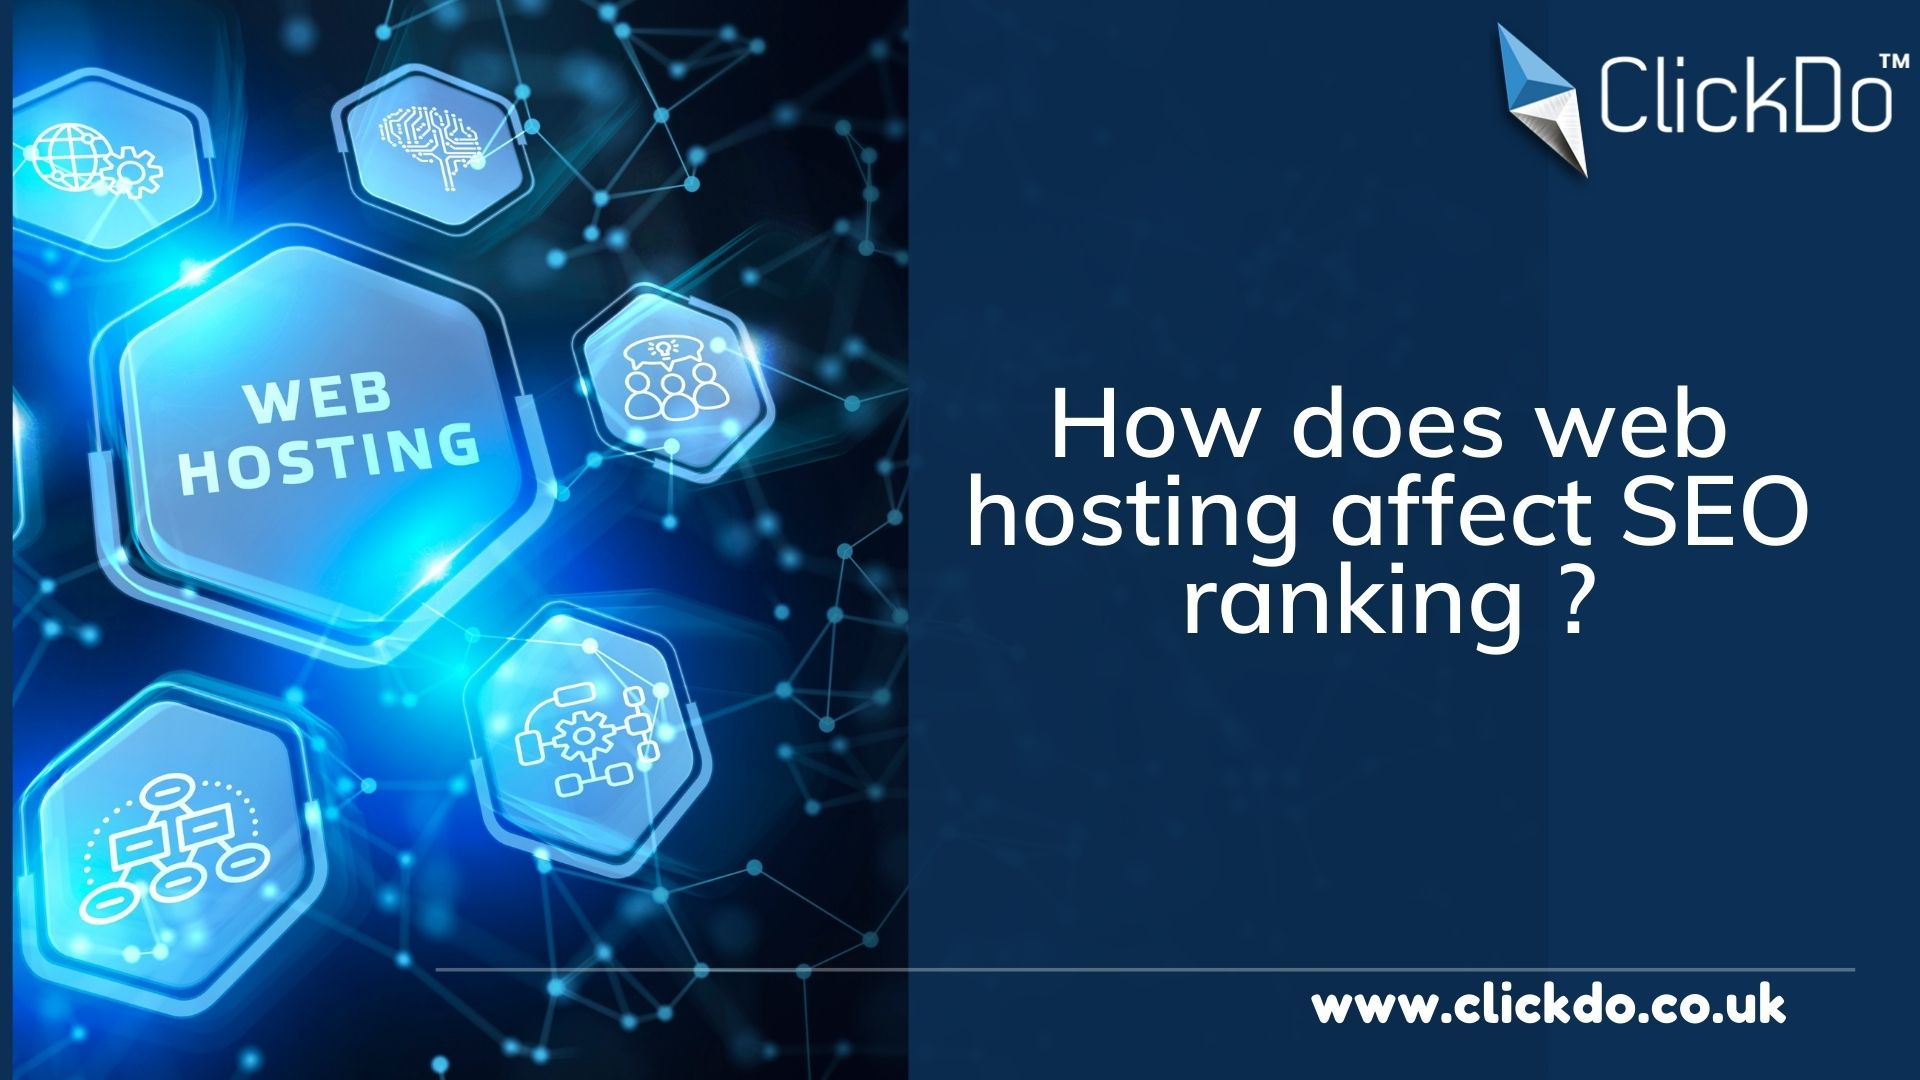 How does web hosting affect SEO ranking